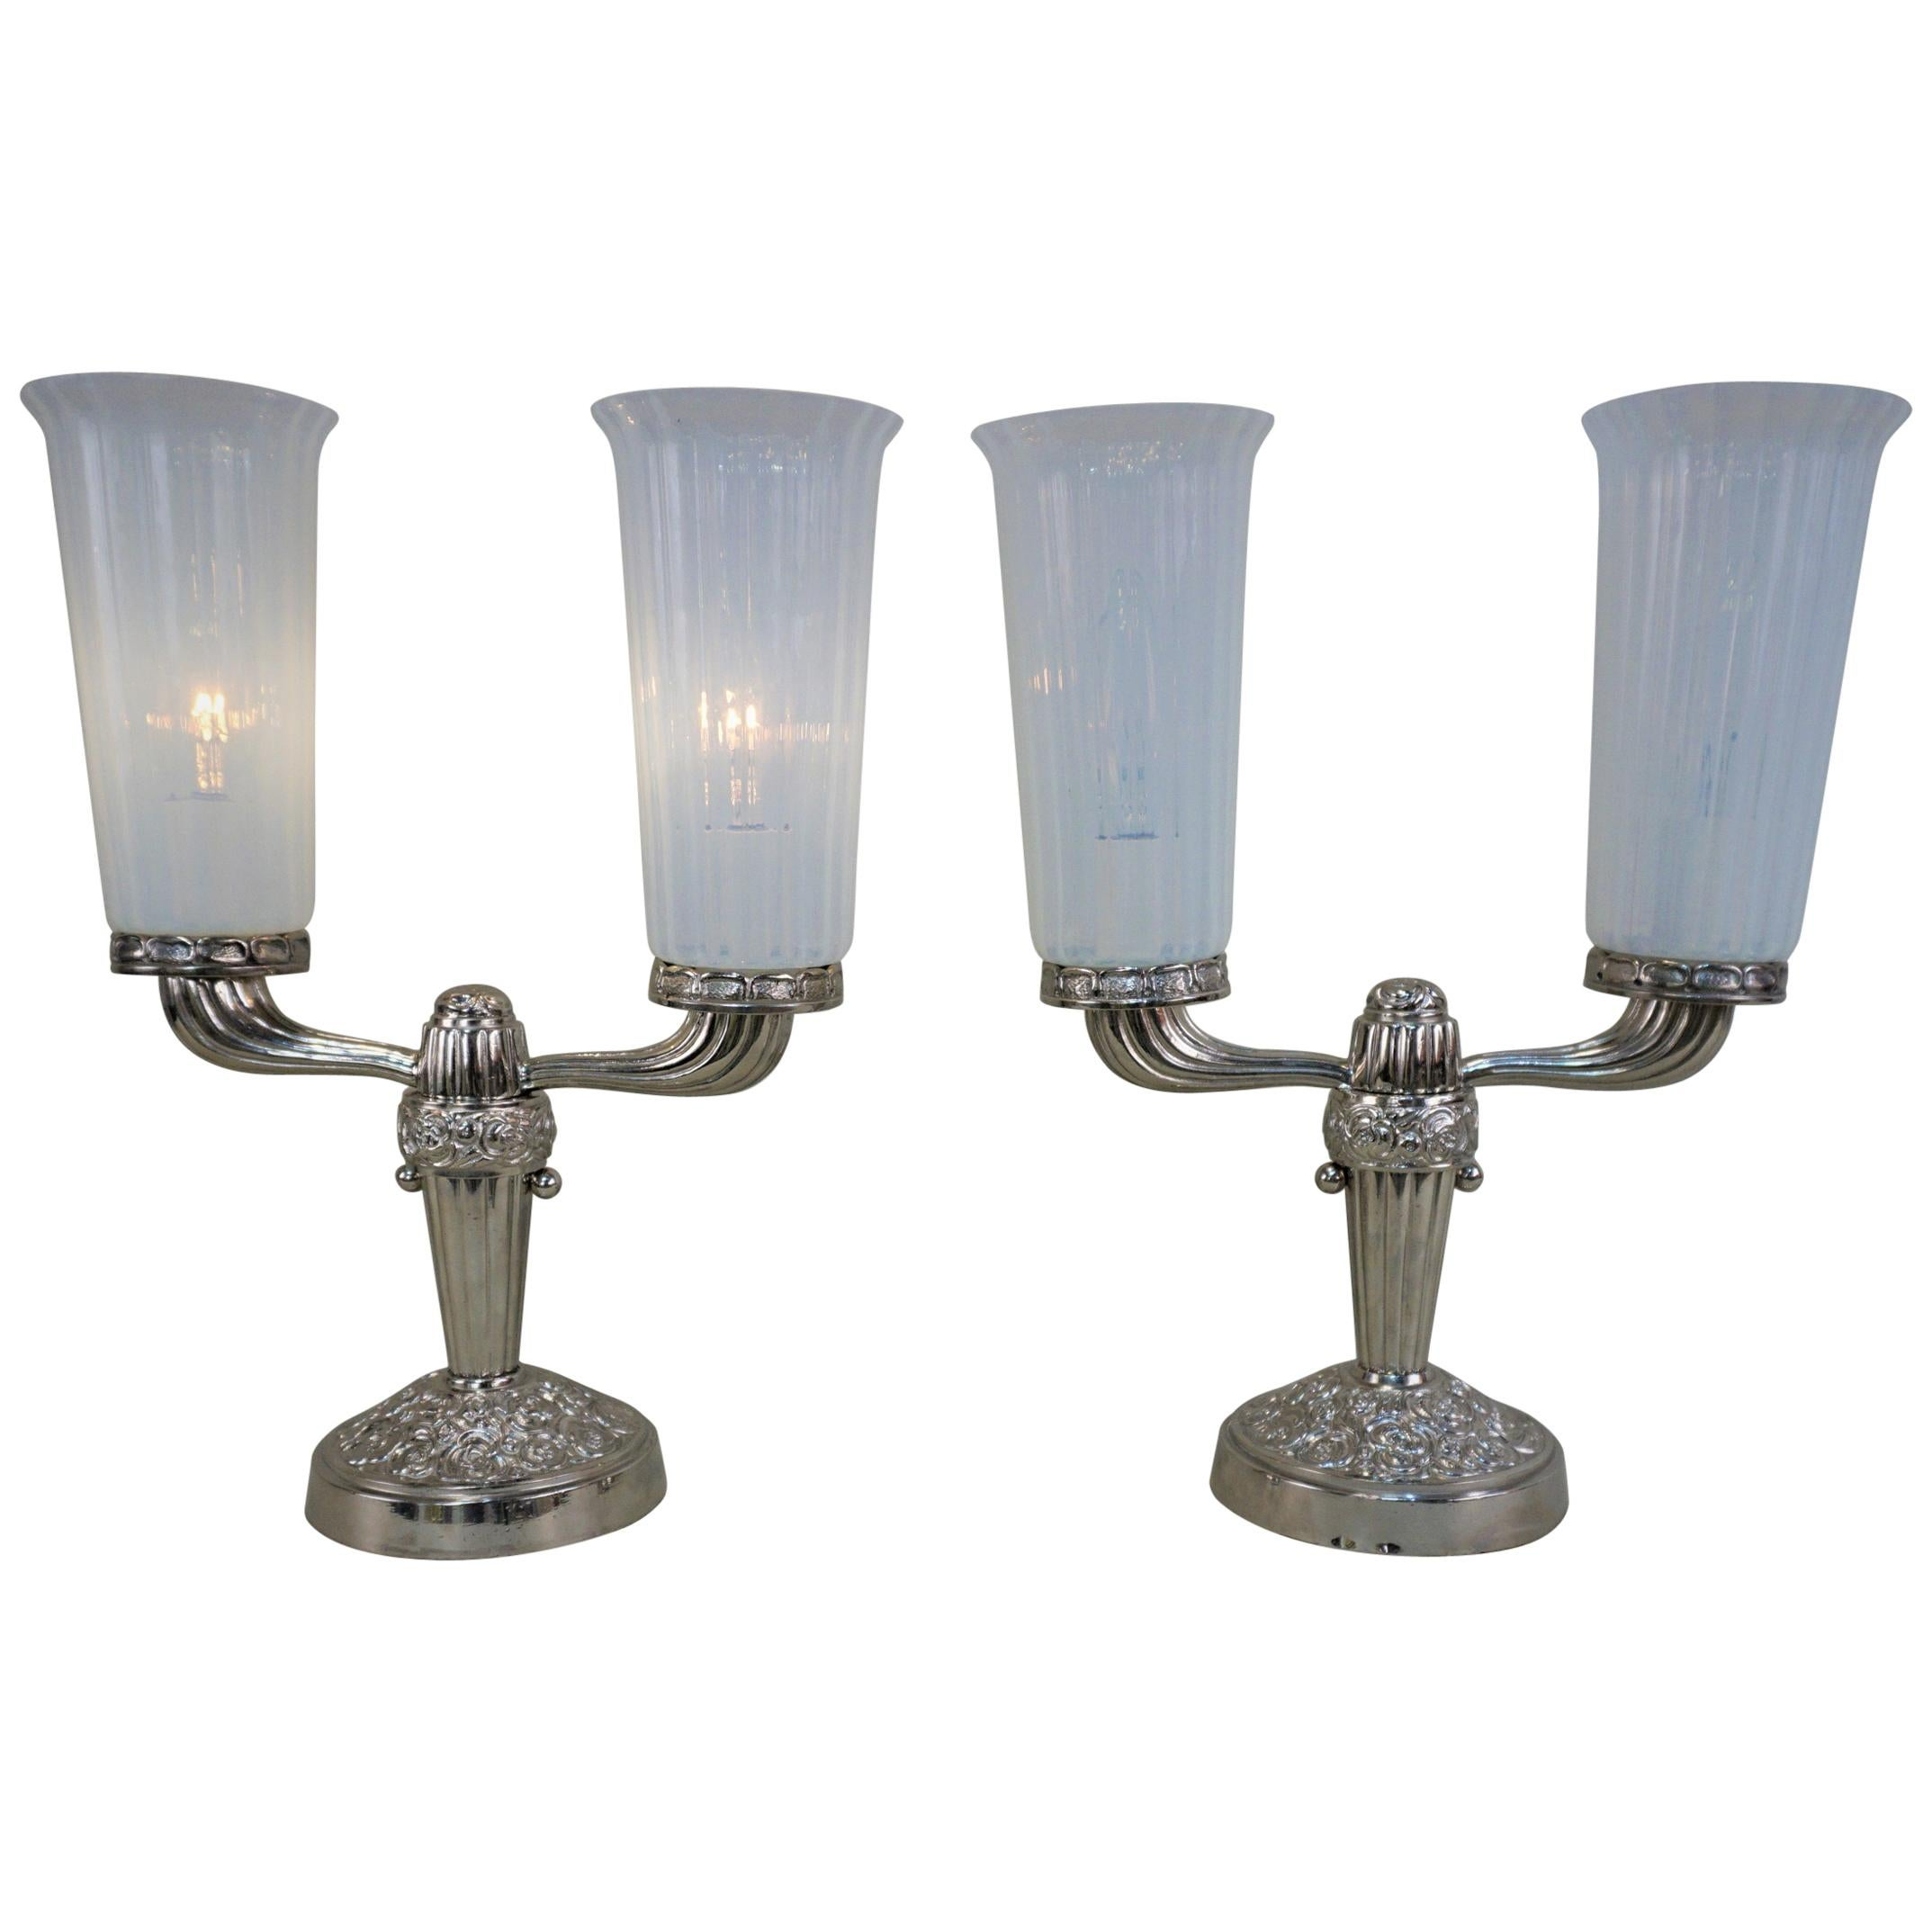 Pair of 1920s Nickel and Opaline Glass Table Lamps